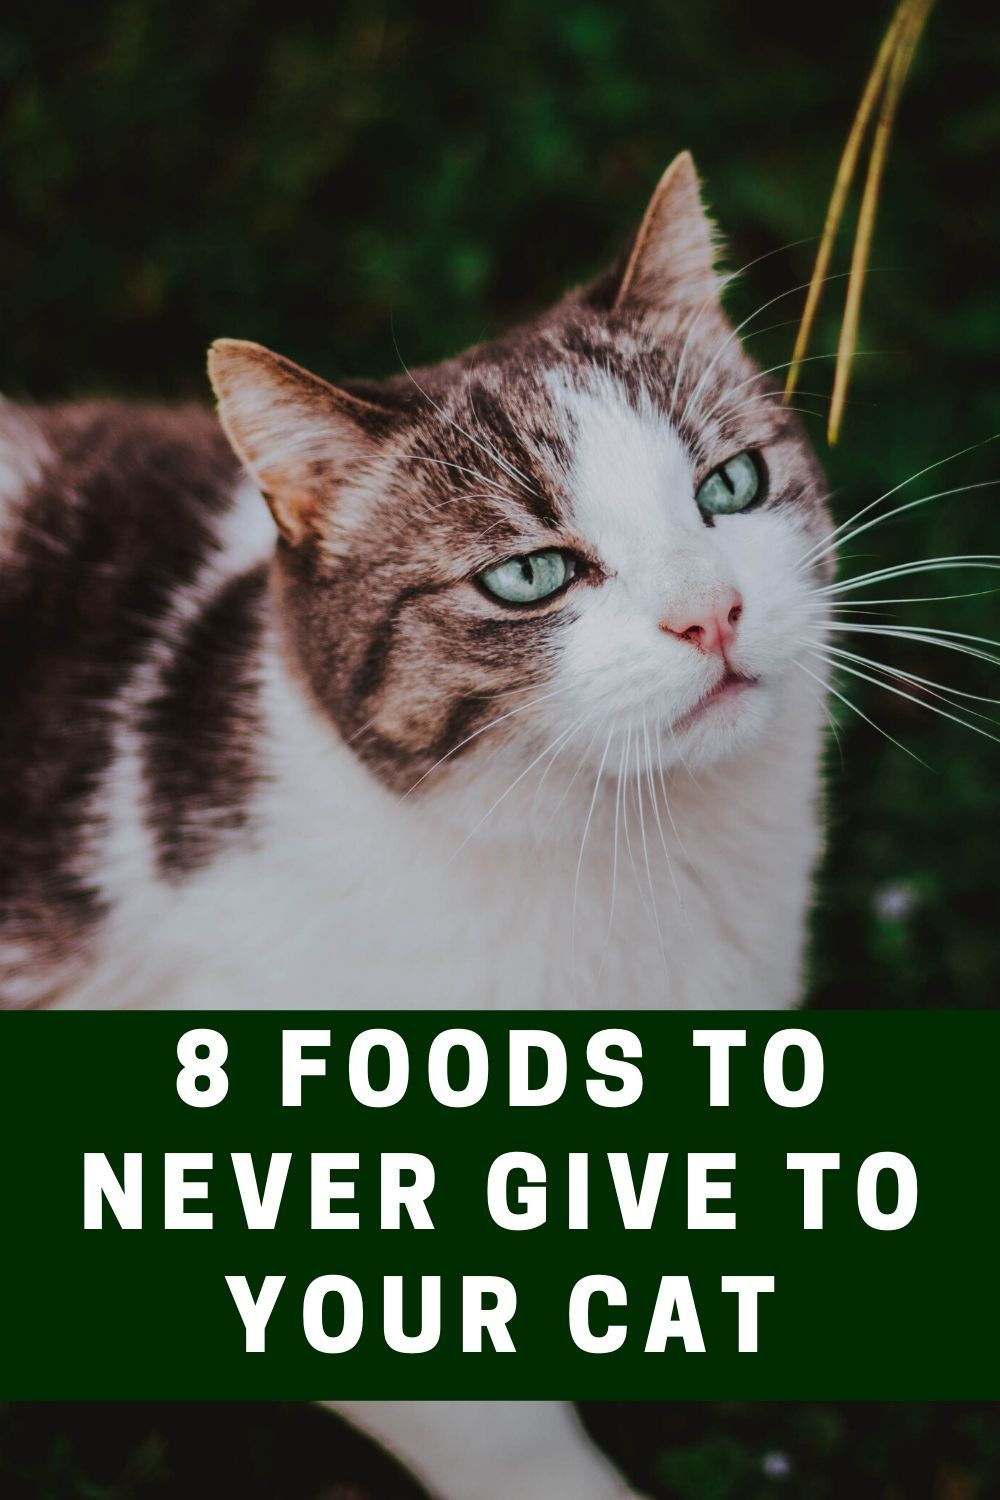 8 Foods to Never Give to Your Cat Welfar4us in 2020